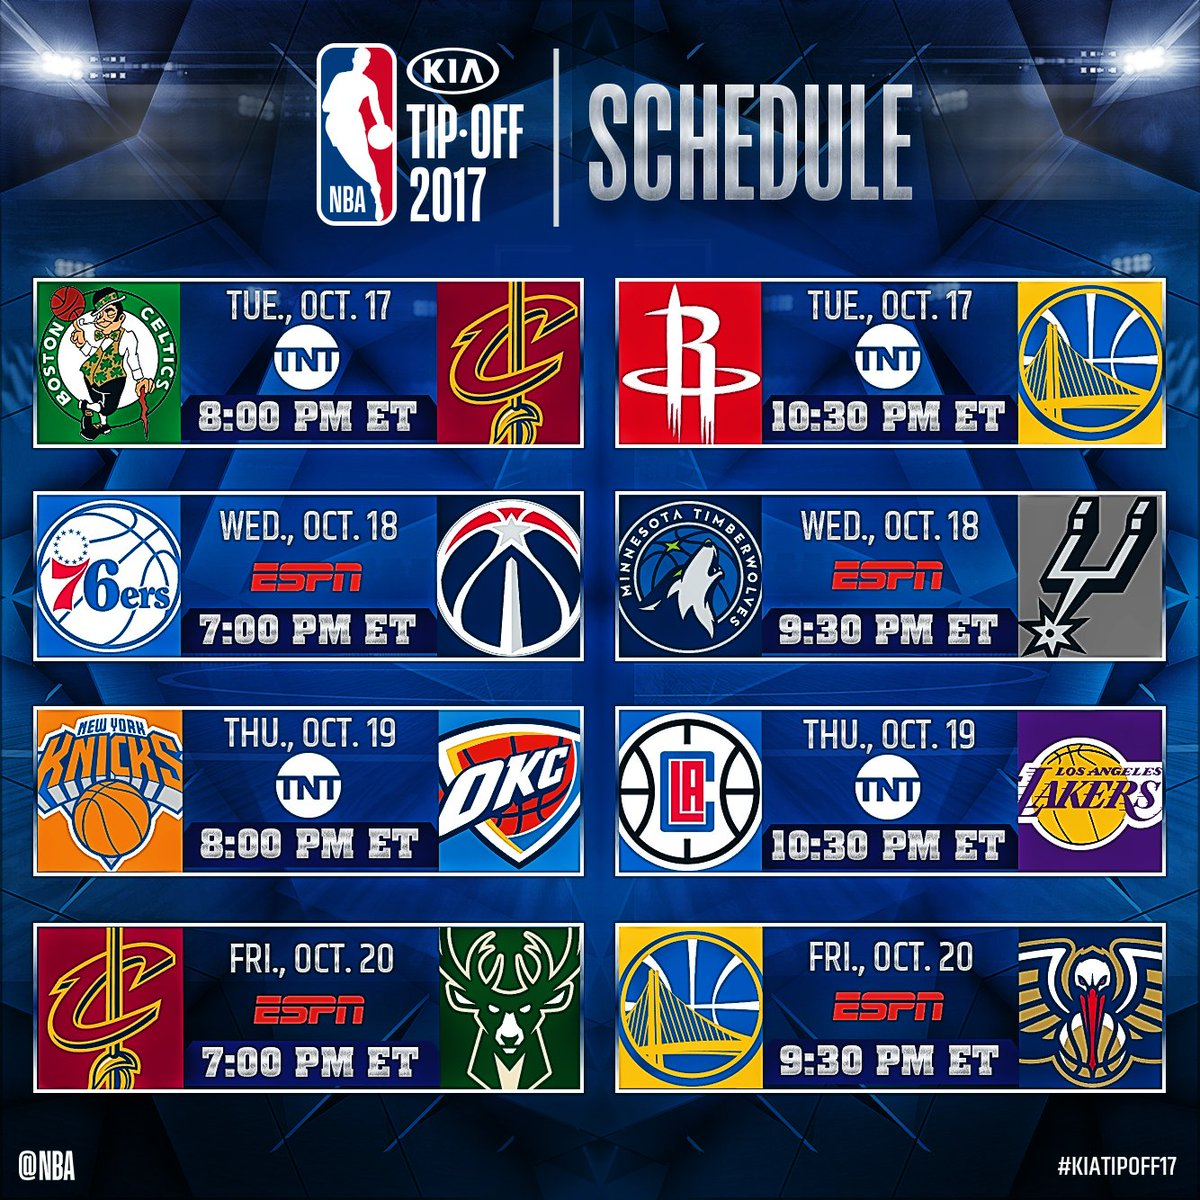 """nba on twitter: """"nba unveils national tv schedule for #kiatipoff17"""